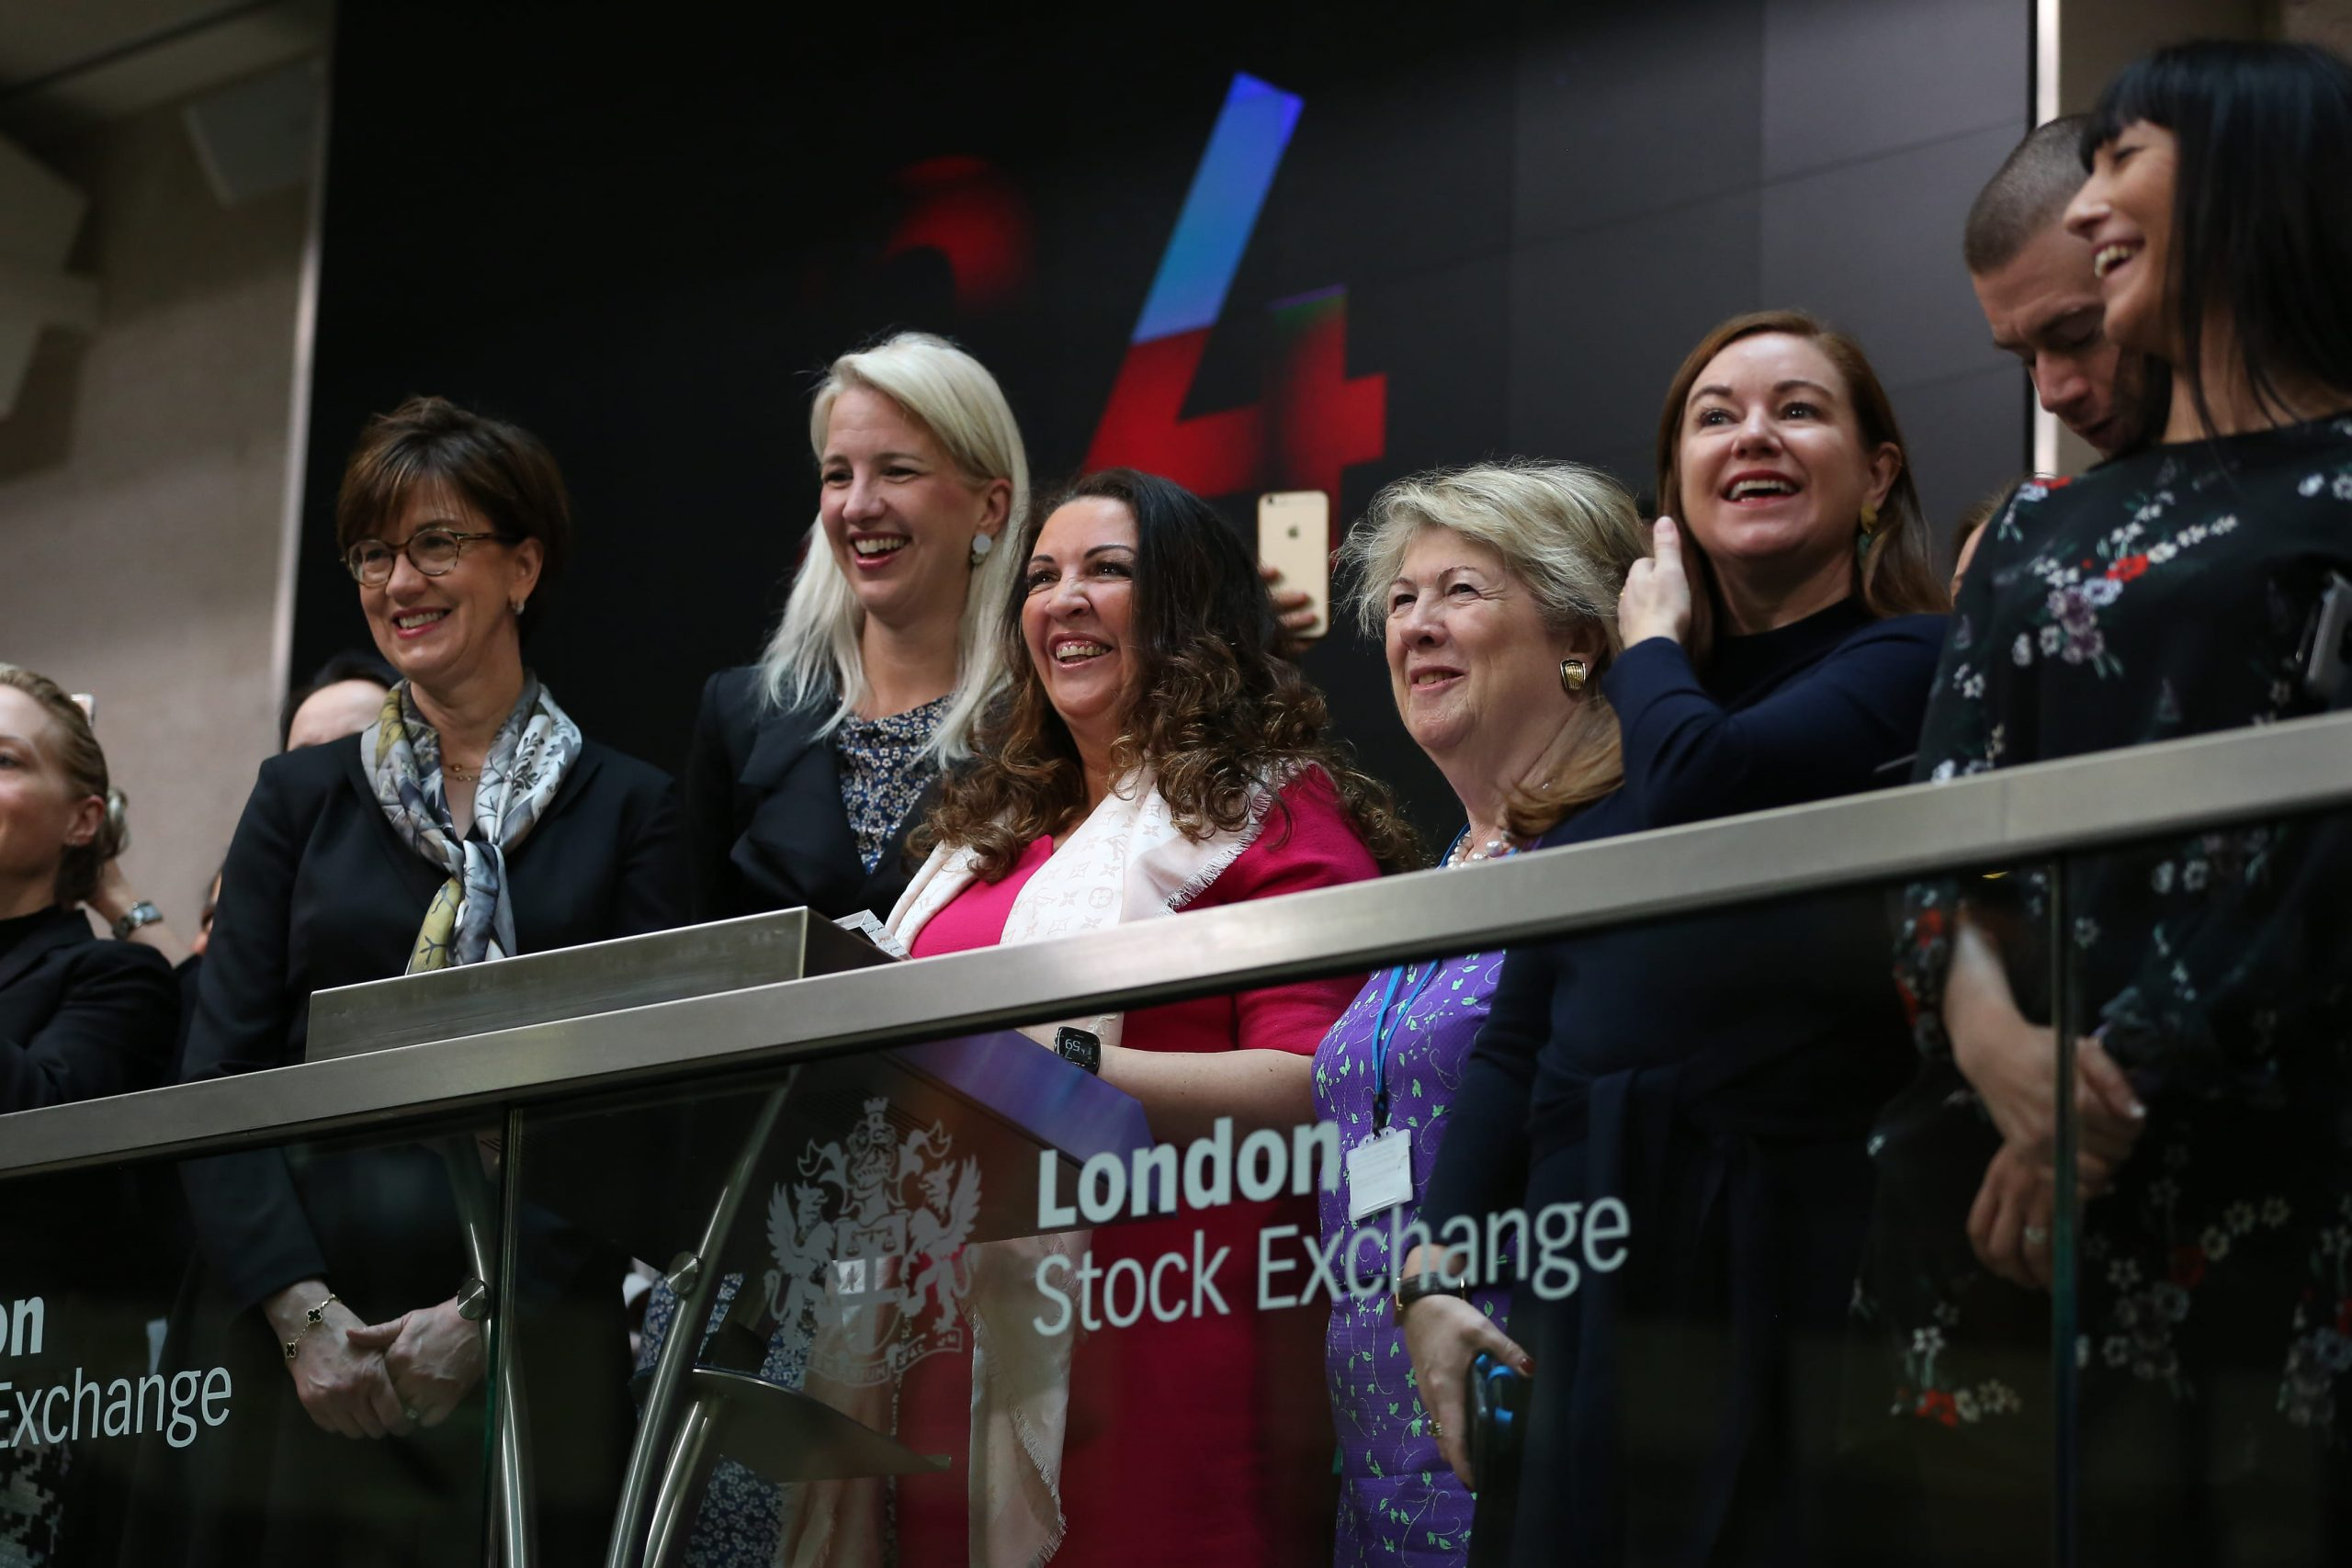 Gender Networks' celebrates its 10th birthday by opening the London Stock Exchange